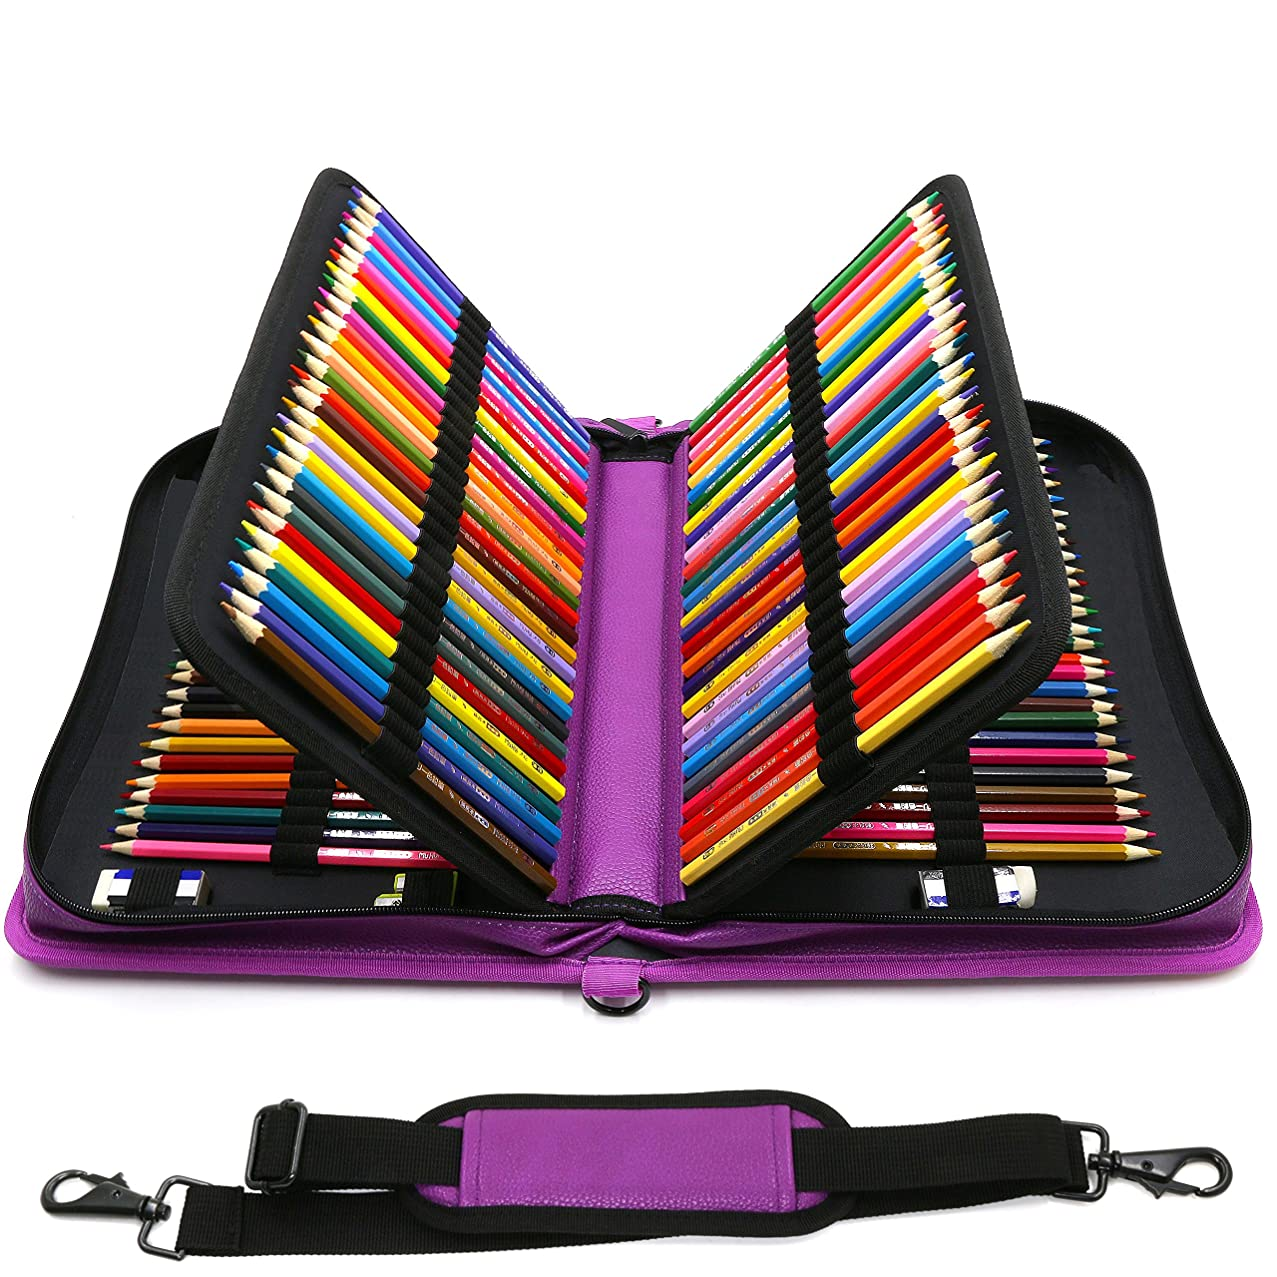 YOUSHARES 160 Slots Pencil Case - PU Leather Large Capacity Zipper Pen Bag with Adjustable Strap for Prismacolor Watercolor Pencils, Crayola Colored Pencils, Marco Pens and Cosmetic Brush (Purple)